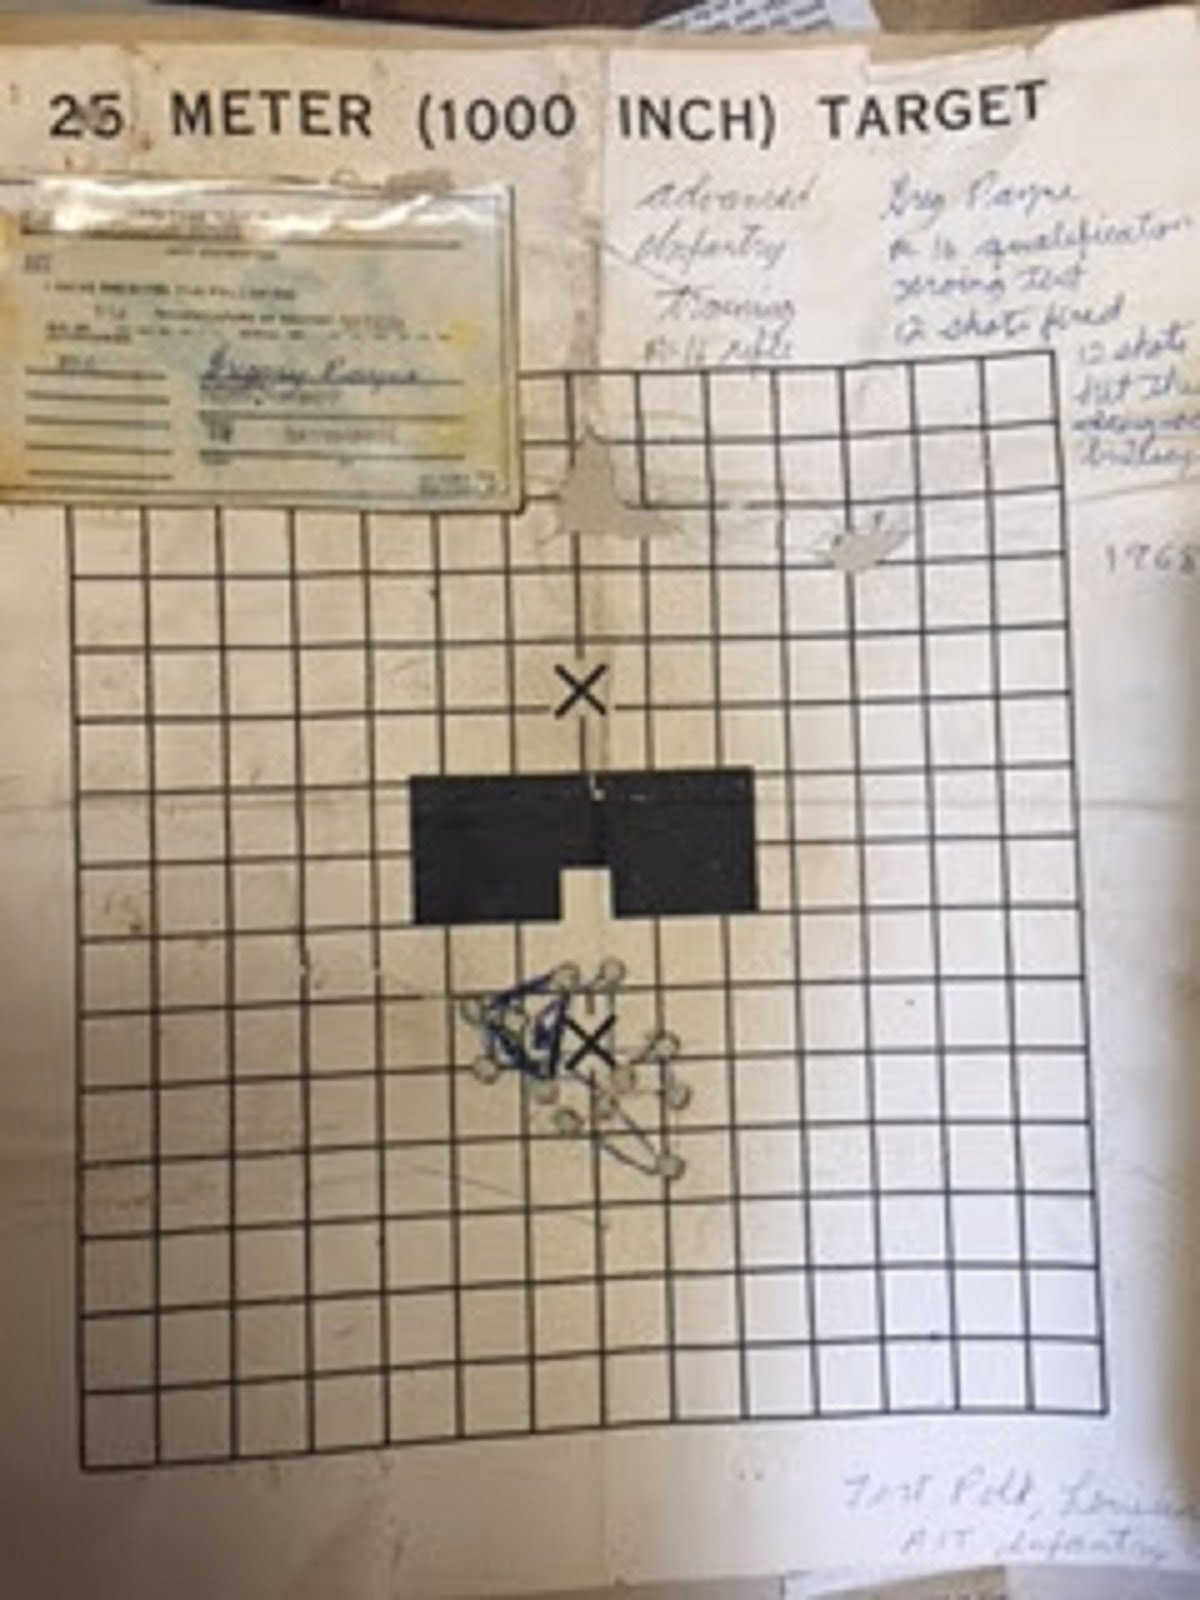 MY M-16 ZERO IN 25 METER TARGET SHOT EXPERT QUALIFICATION  ADVANCED INFANTRY TRAINING FORT POLK, LA